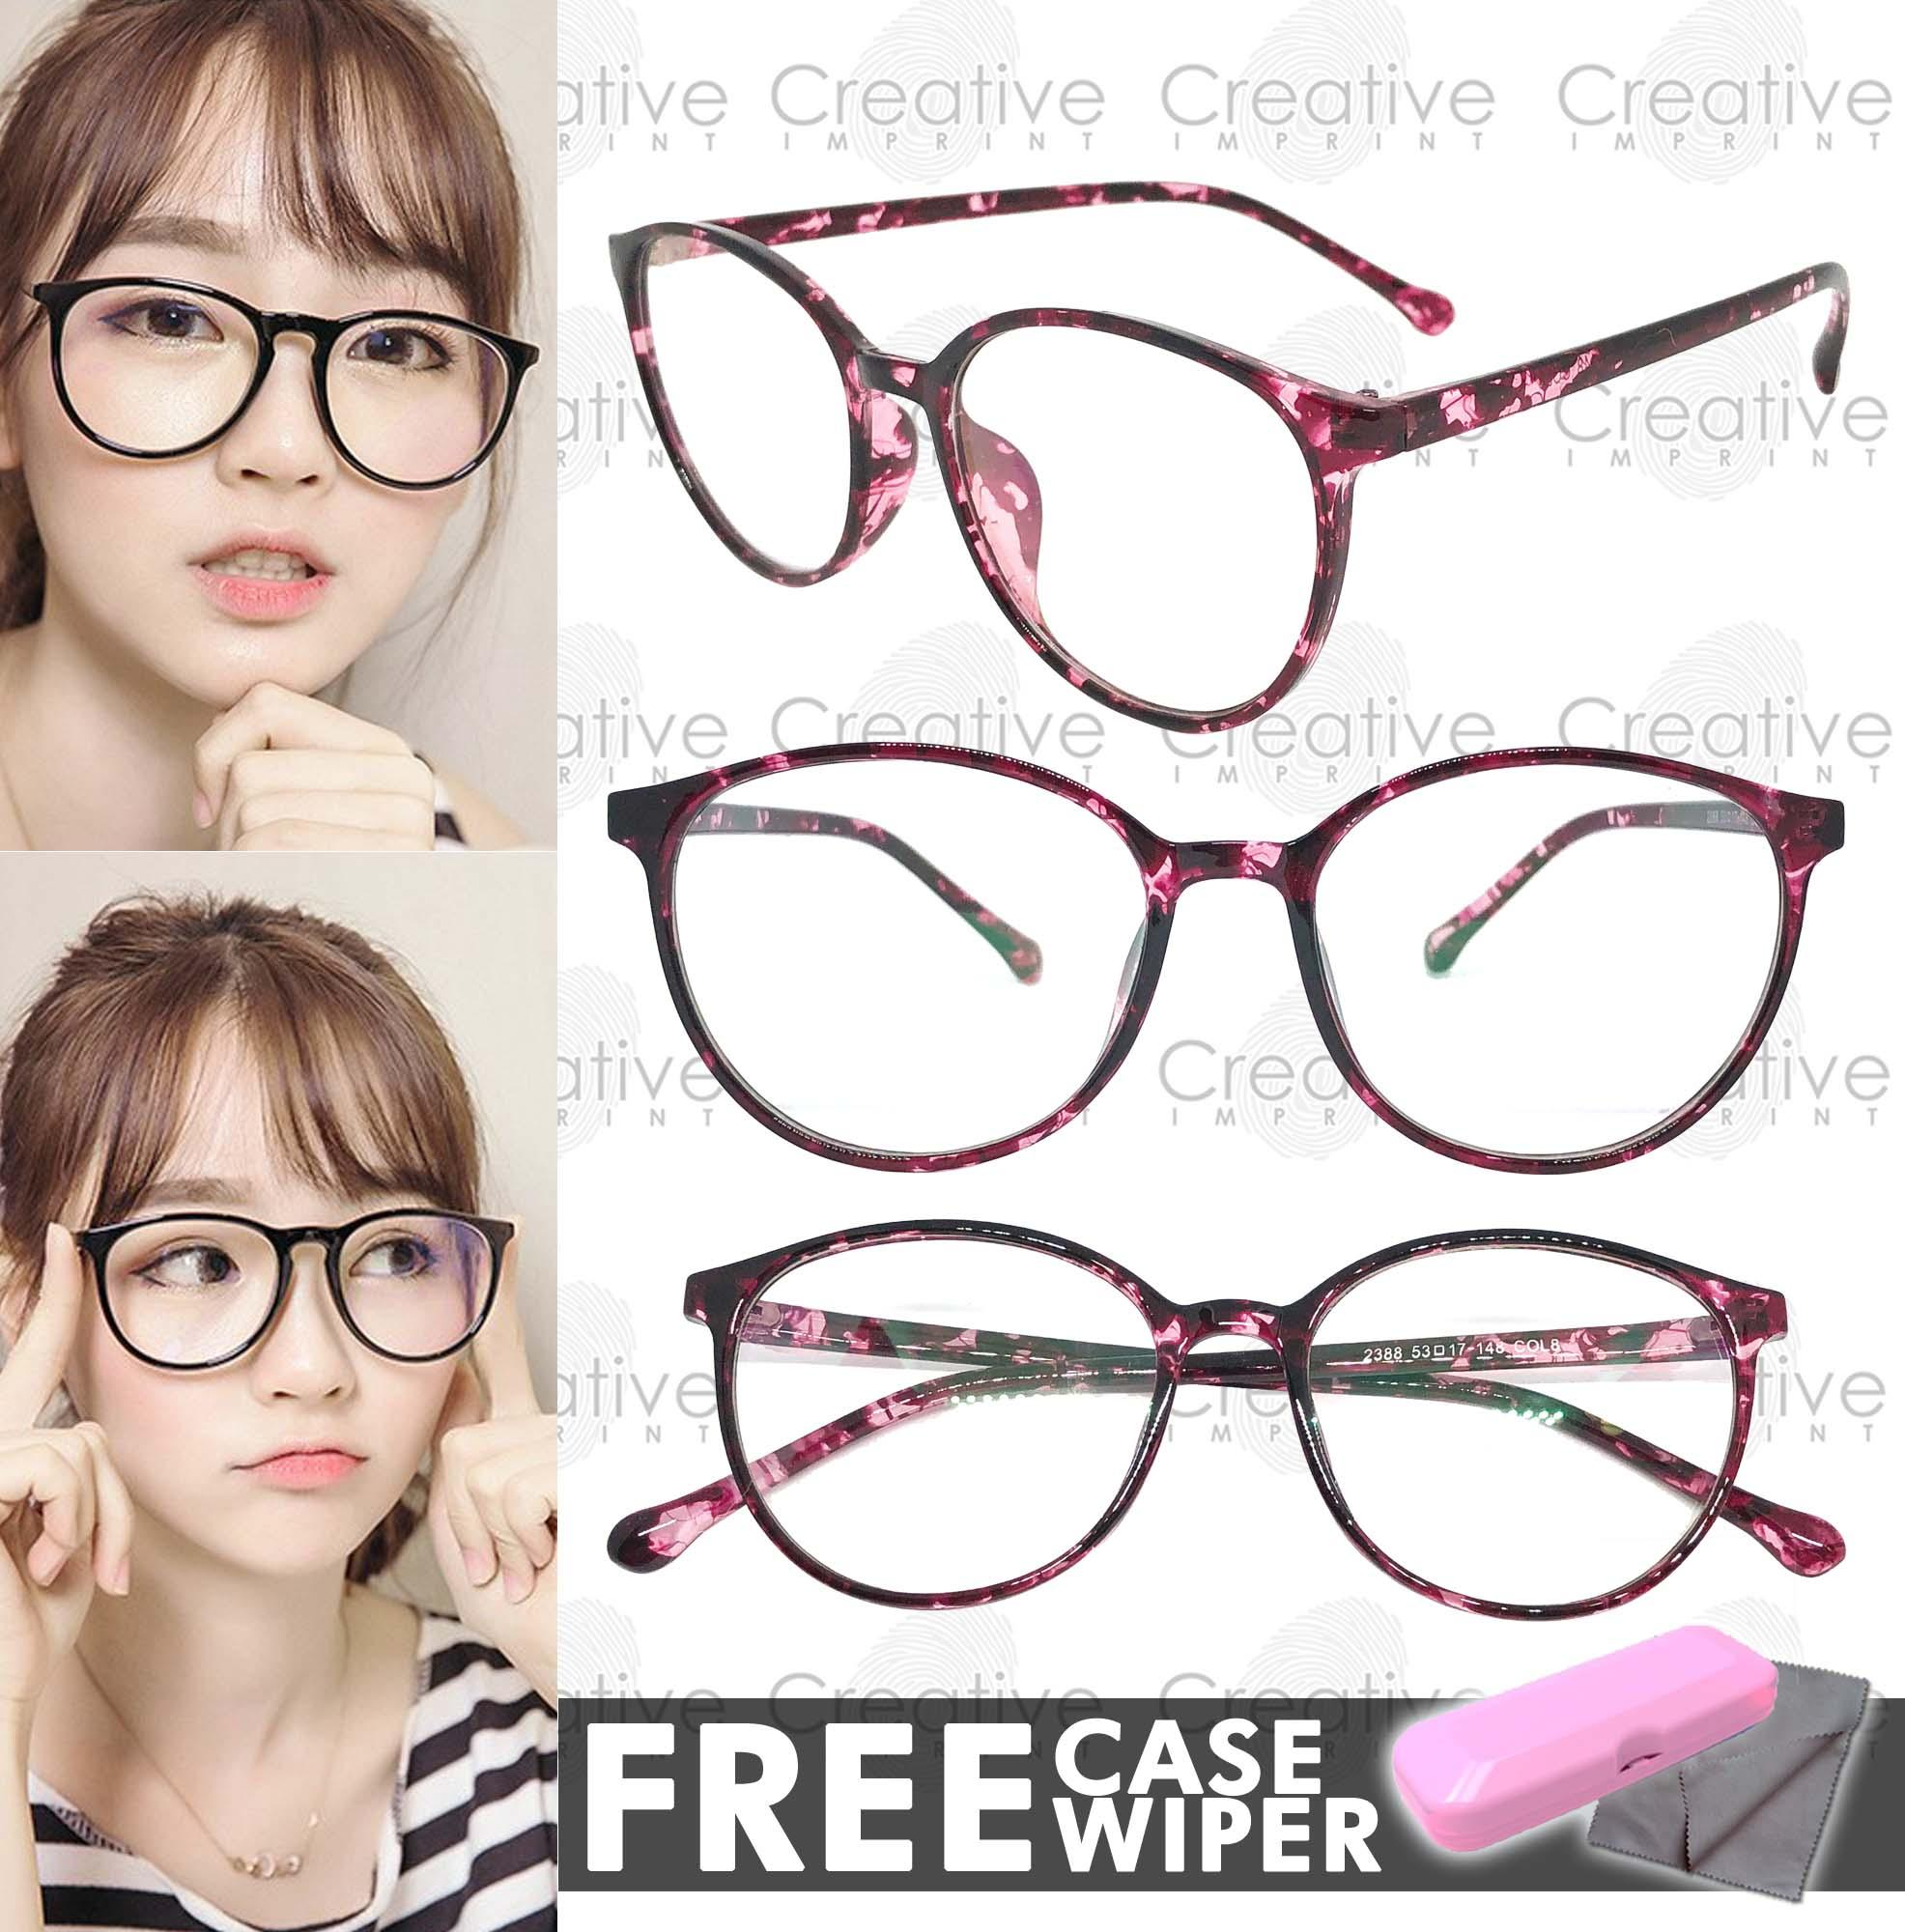 5cd4b31685 Creative Imprint Eyeglasses Anti-Radiation Lens ( 05 Animal Print Purple)  Anti-